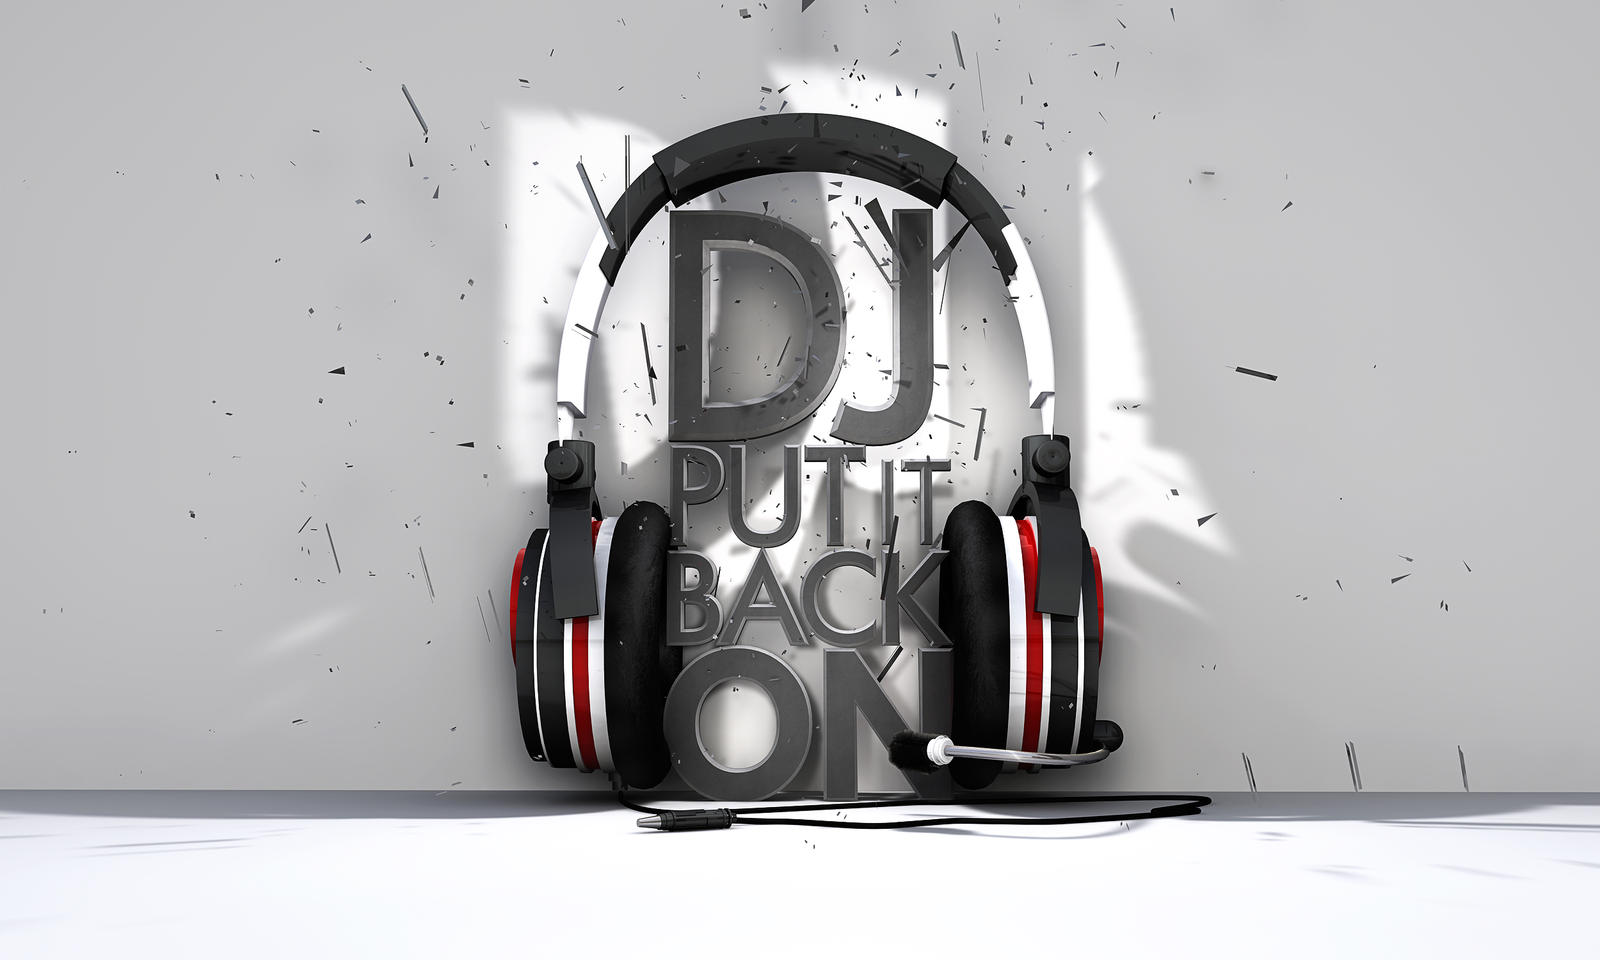 DJ PUT IT BACK ON by UberzErO